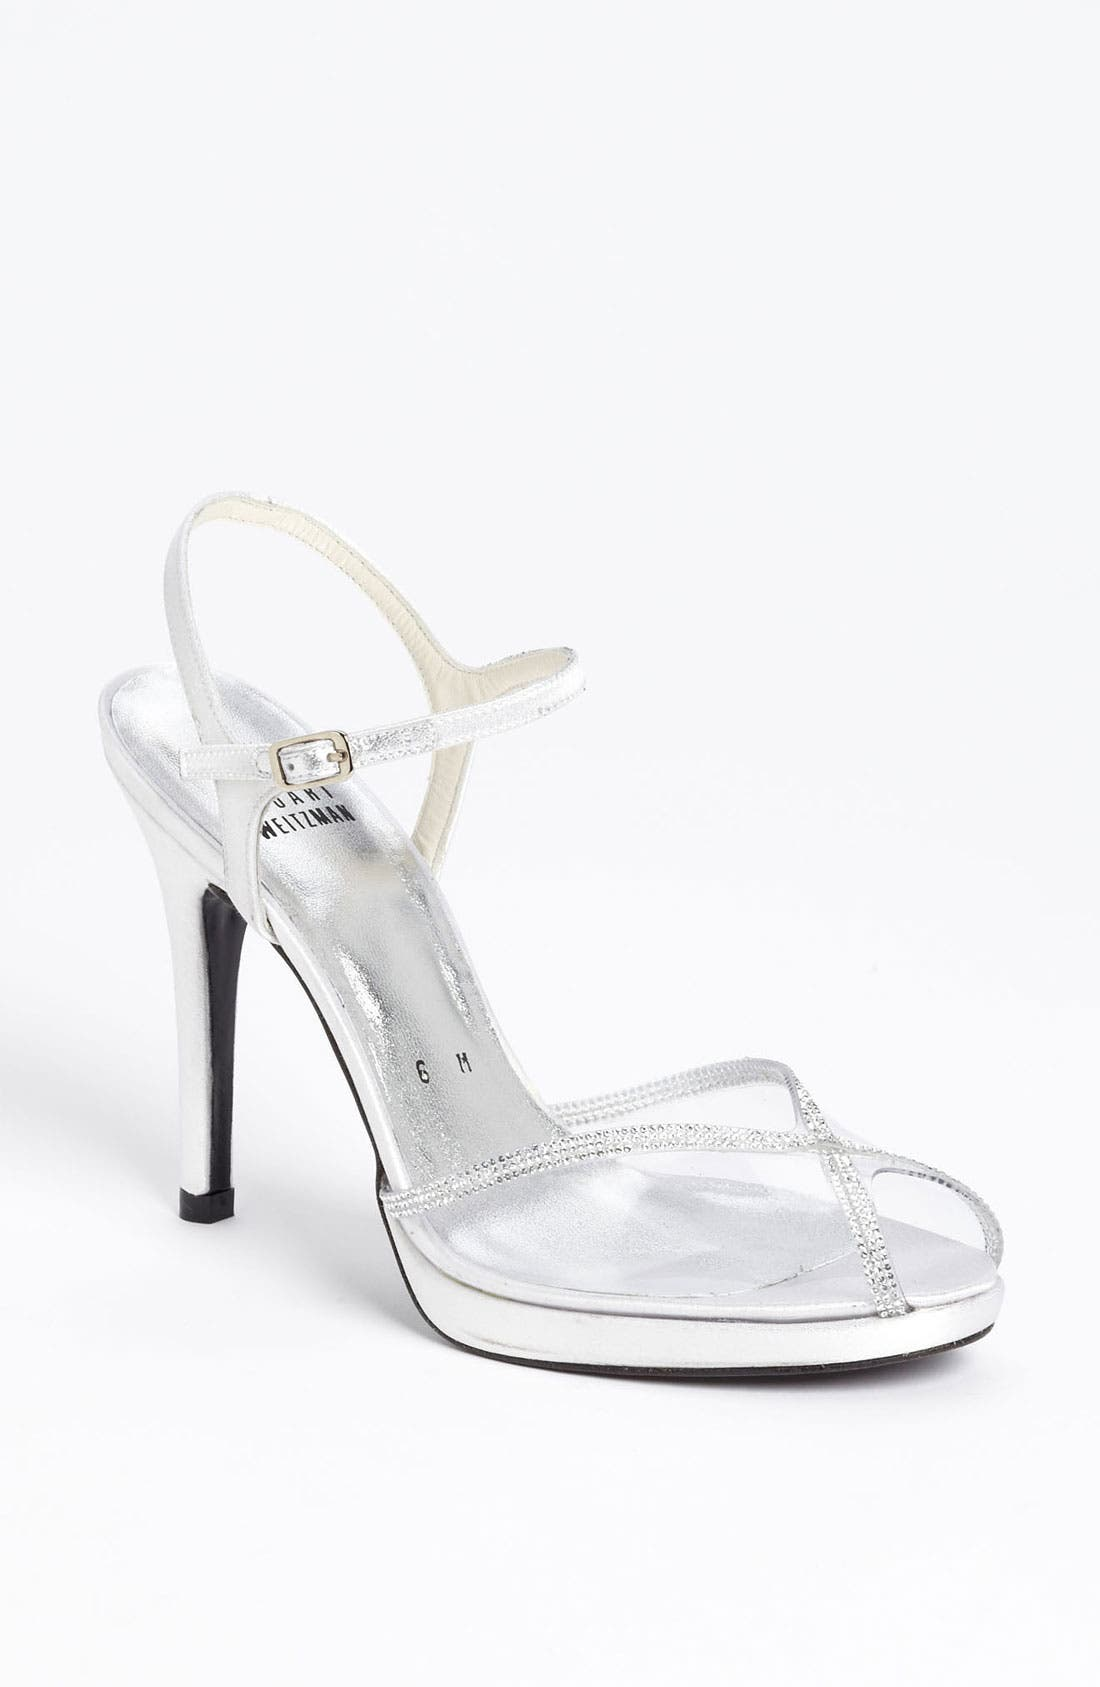 Alternate Image 1 Selected - Stuart Weitzman 'Clarinet' Sandal